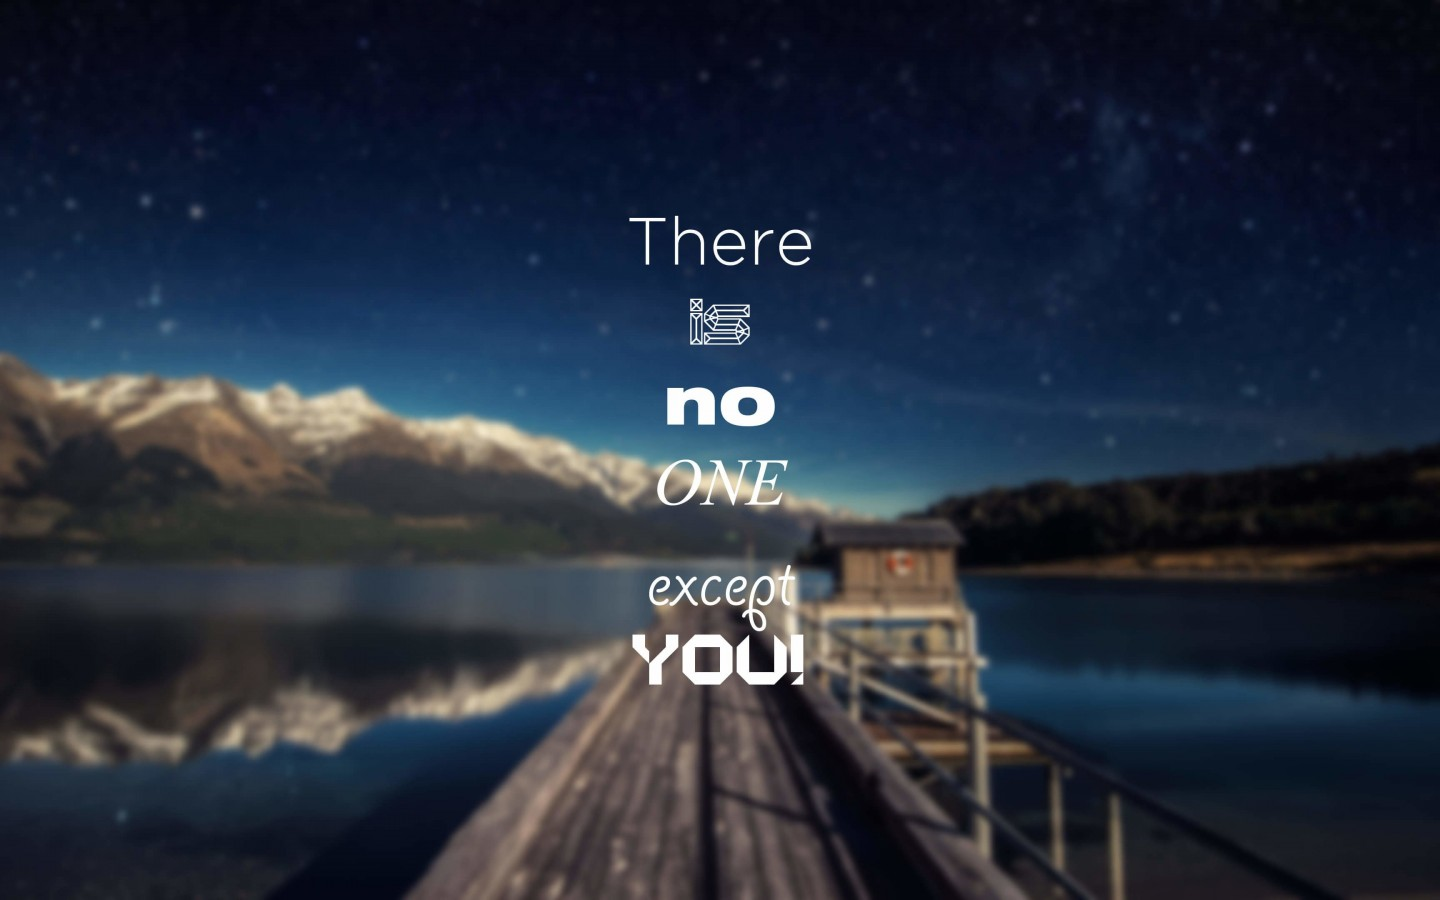 There Is No One Except You Wallpaper for Desktop 1440x900